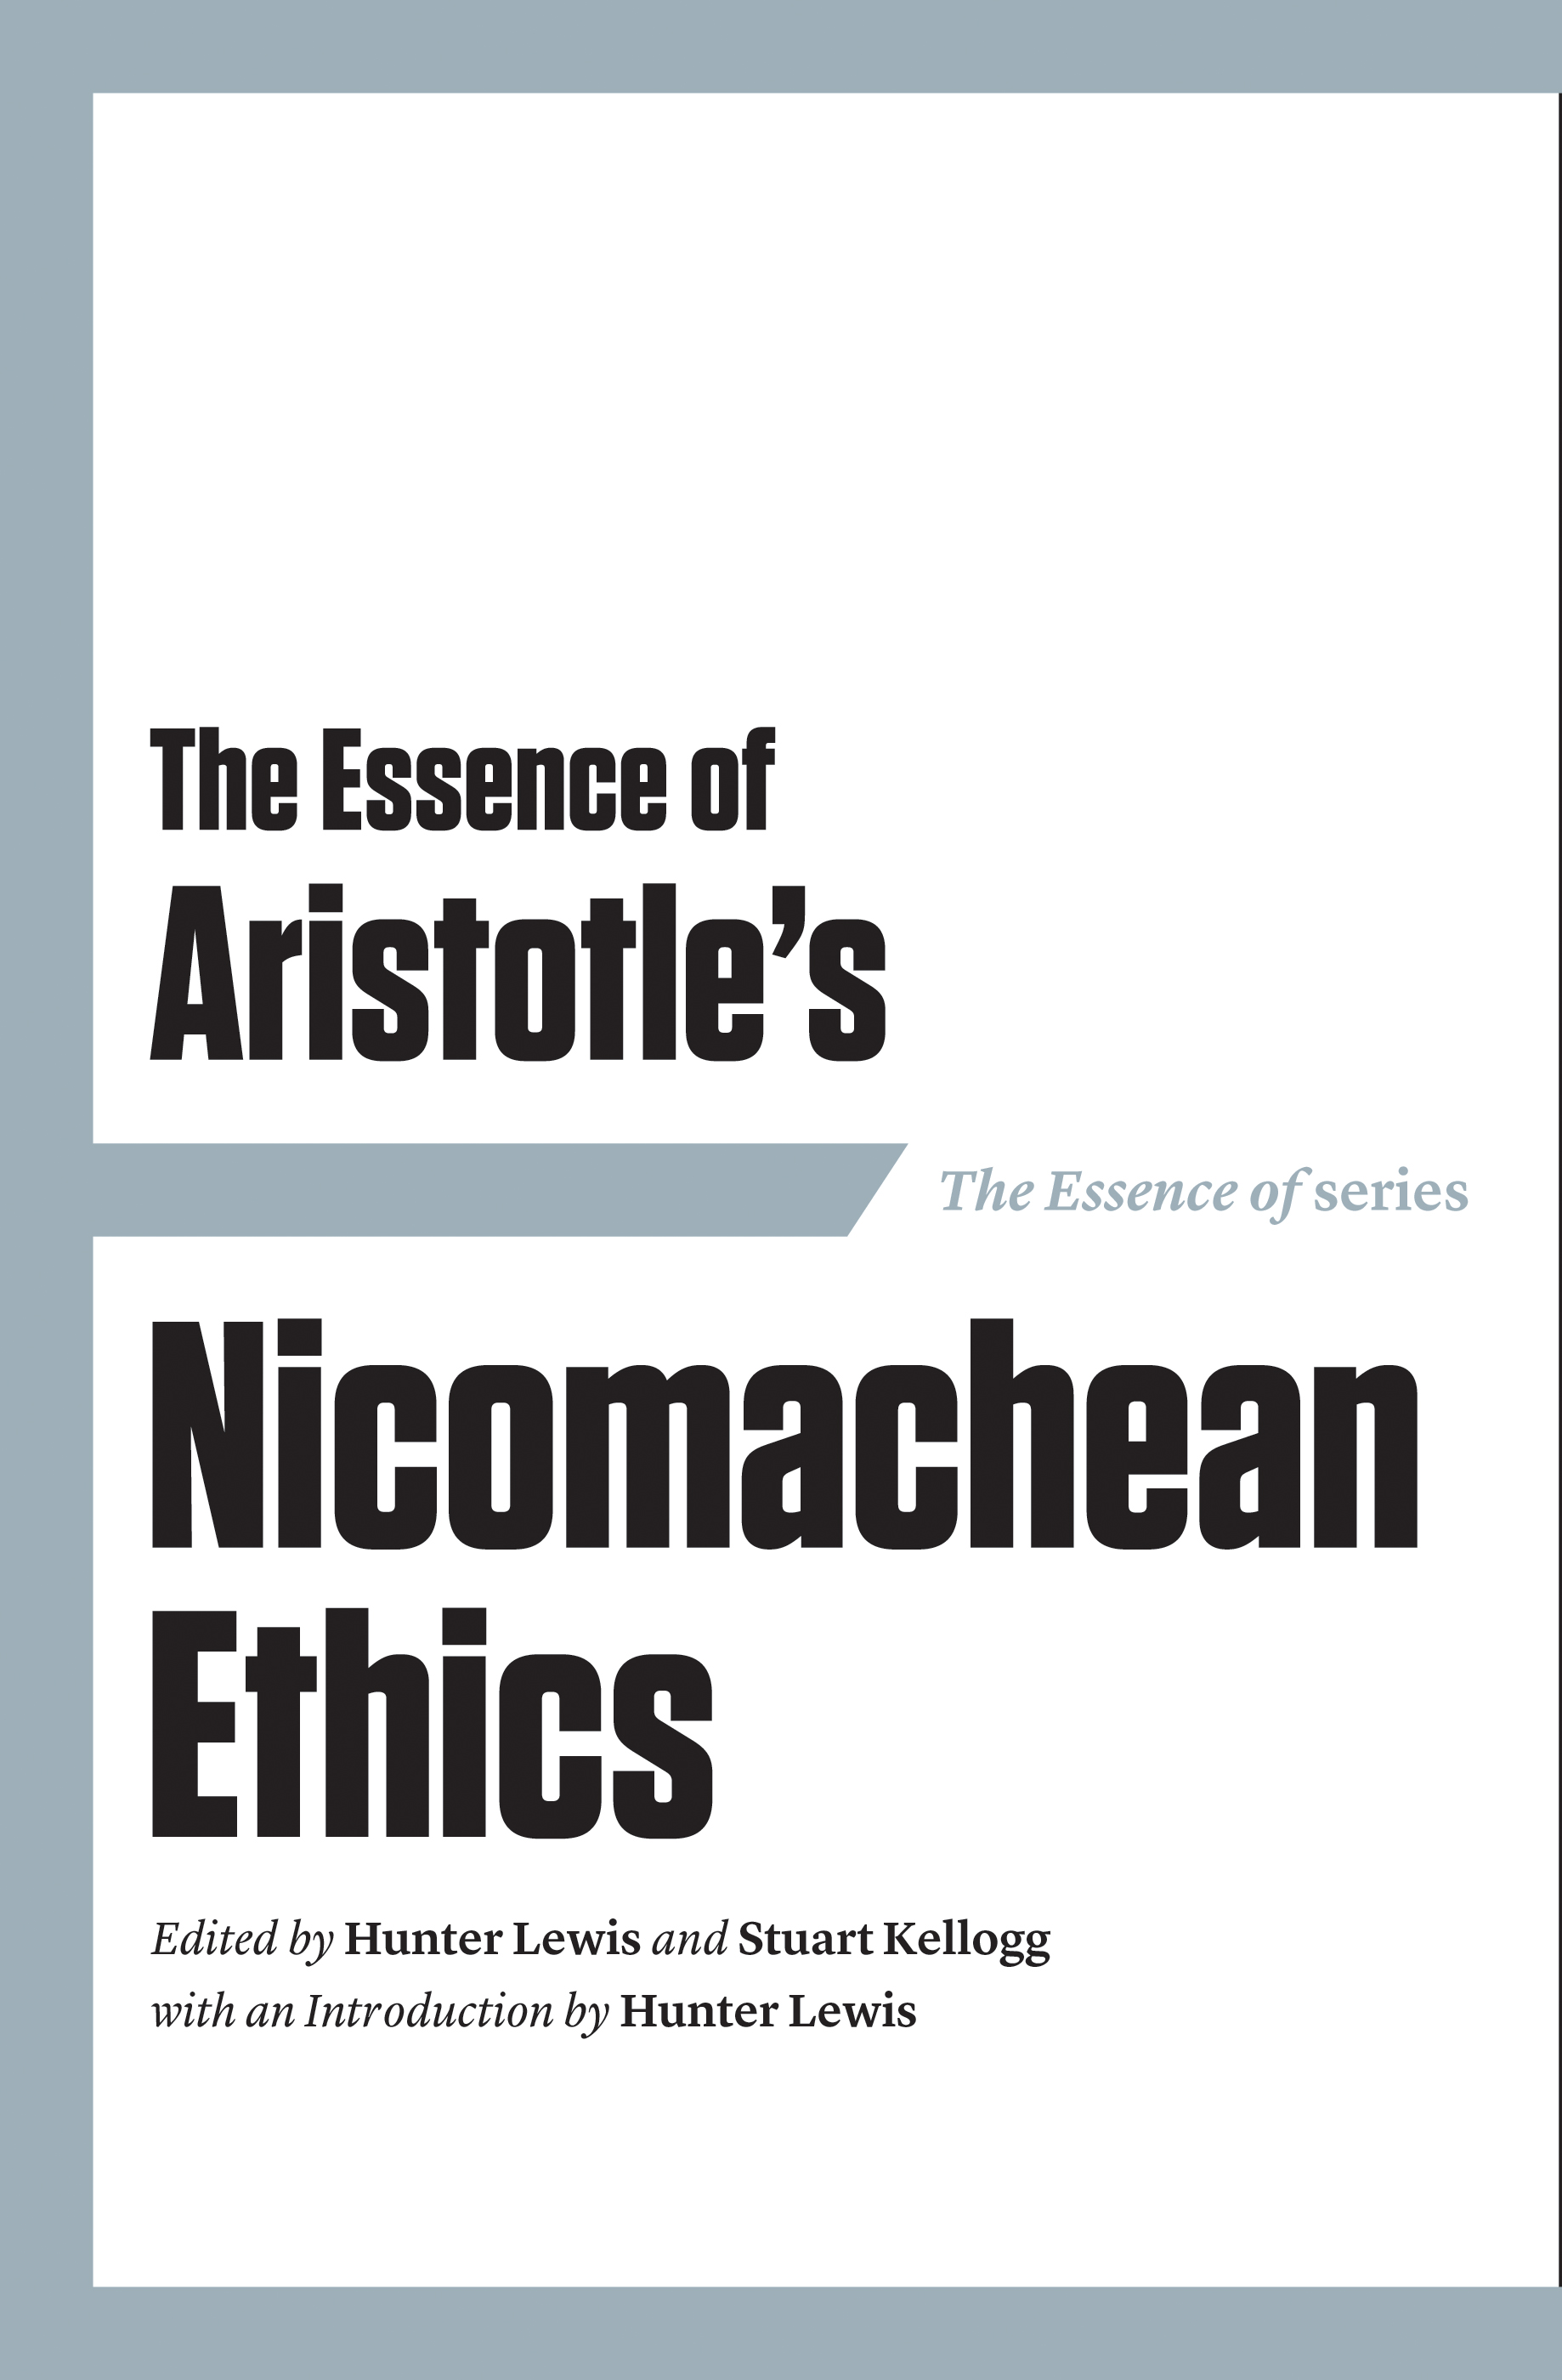 an analysis of the human good in nicomachean ethics by aristotle